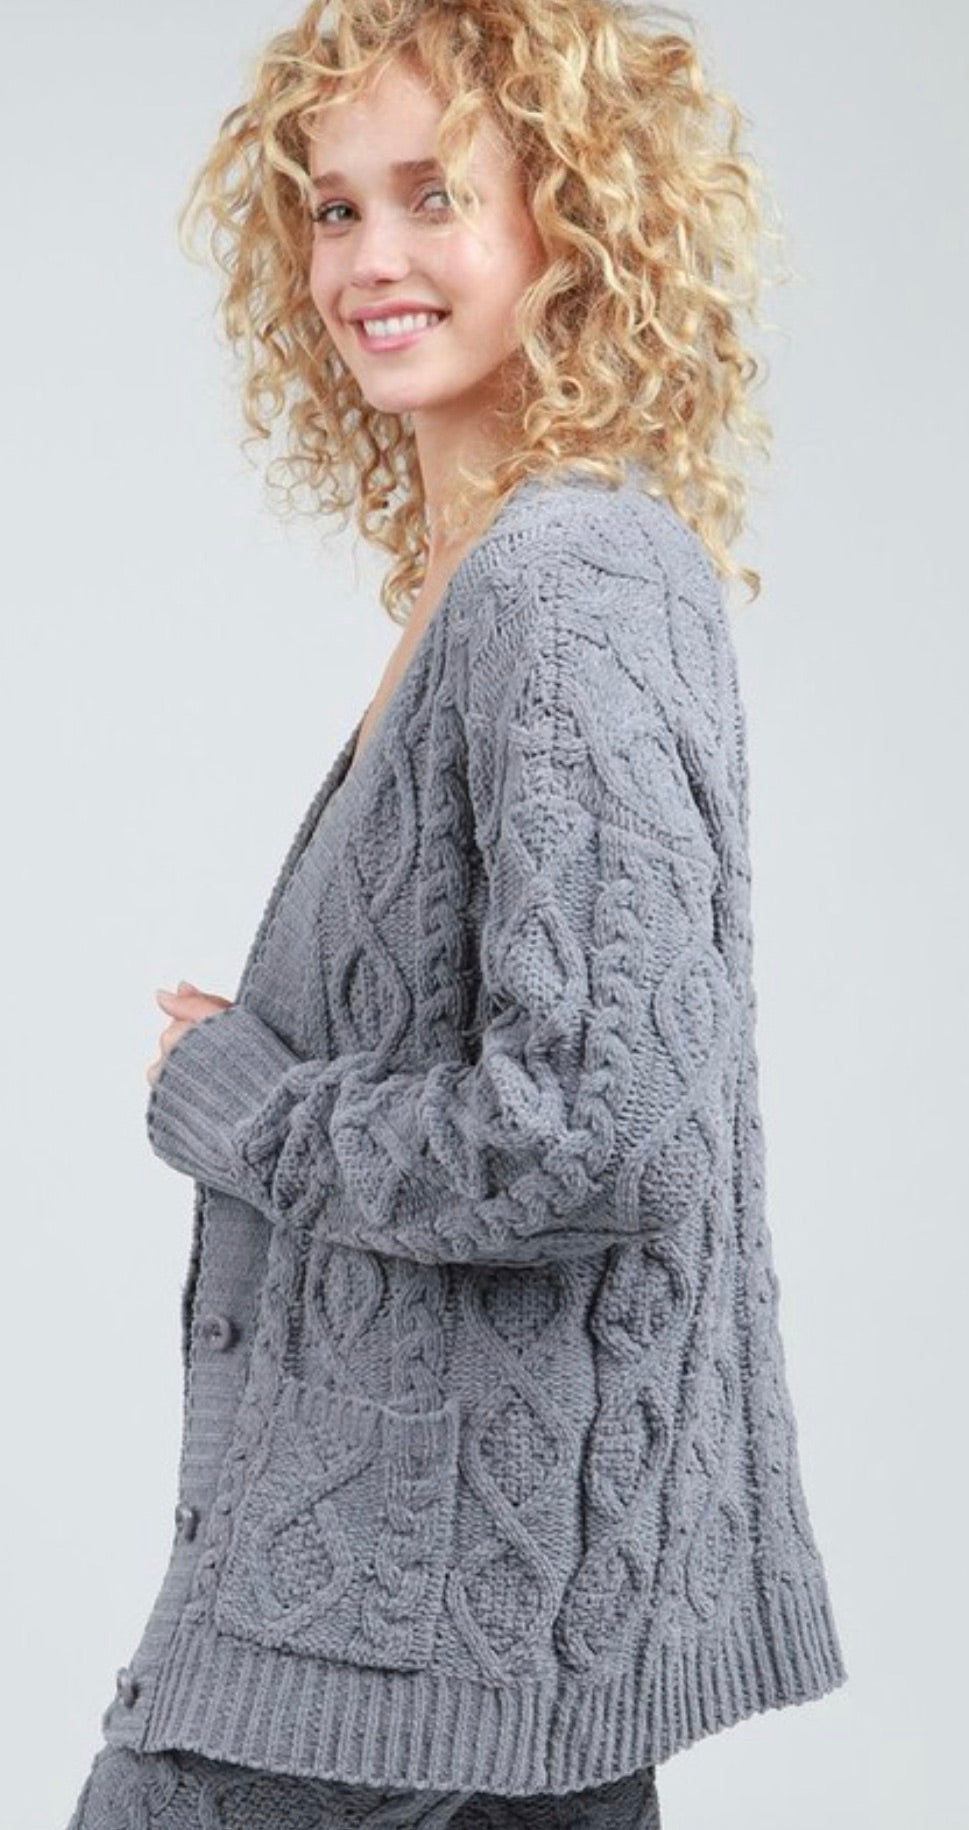 Berber fleece sweater cardigan with front button clousre and pockets | Cheeky Cactus